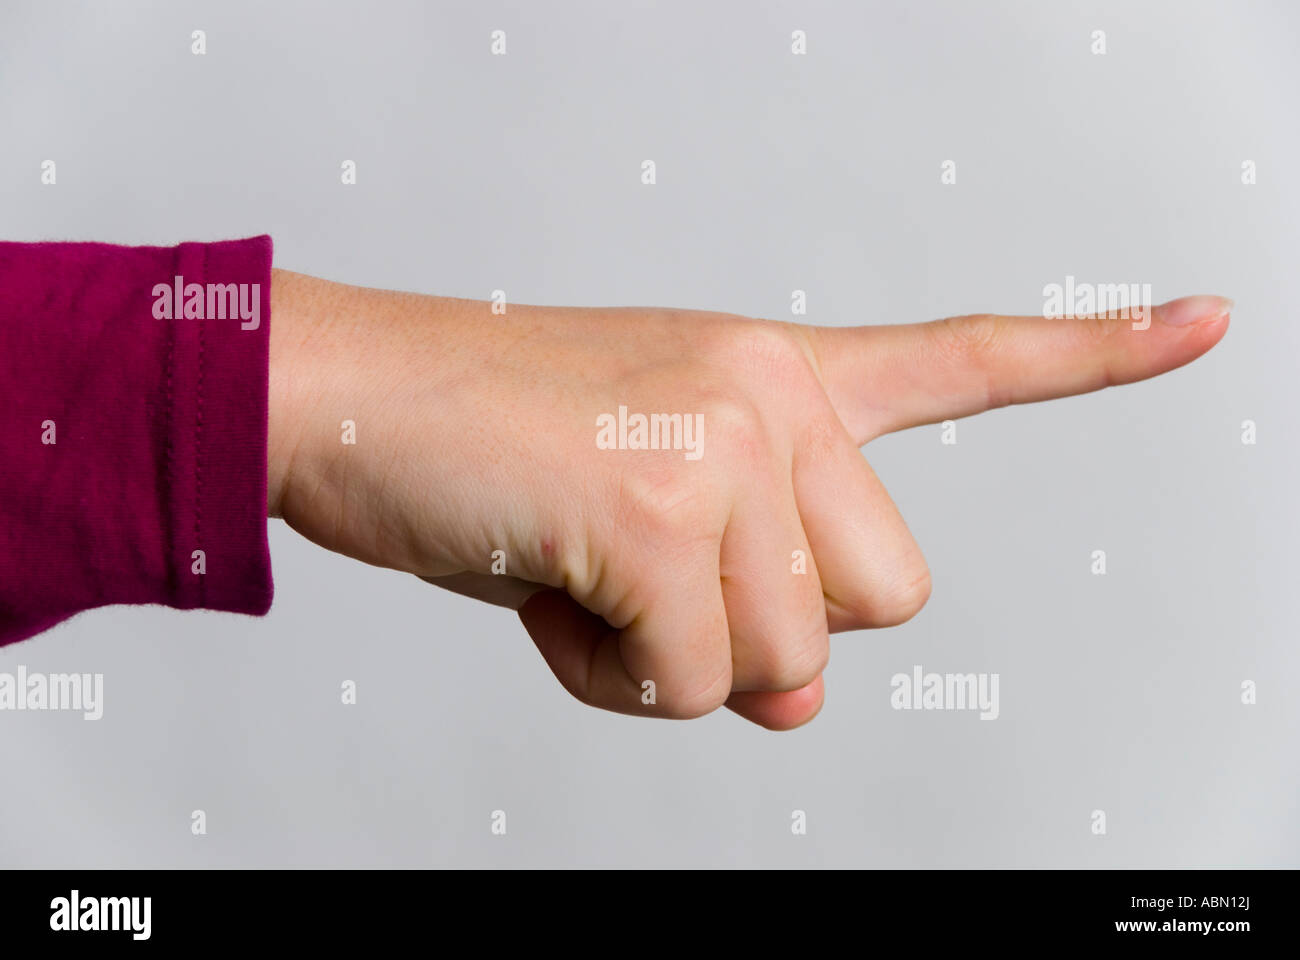 Finger pointing in an accusatory manner - Stock Image